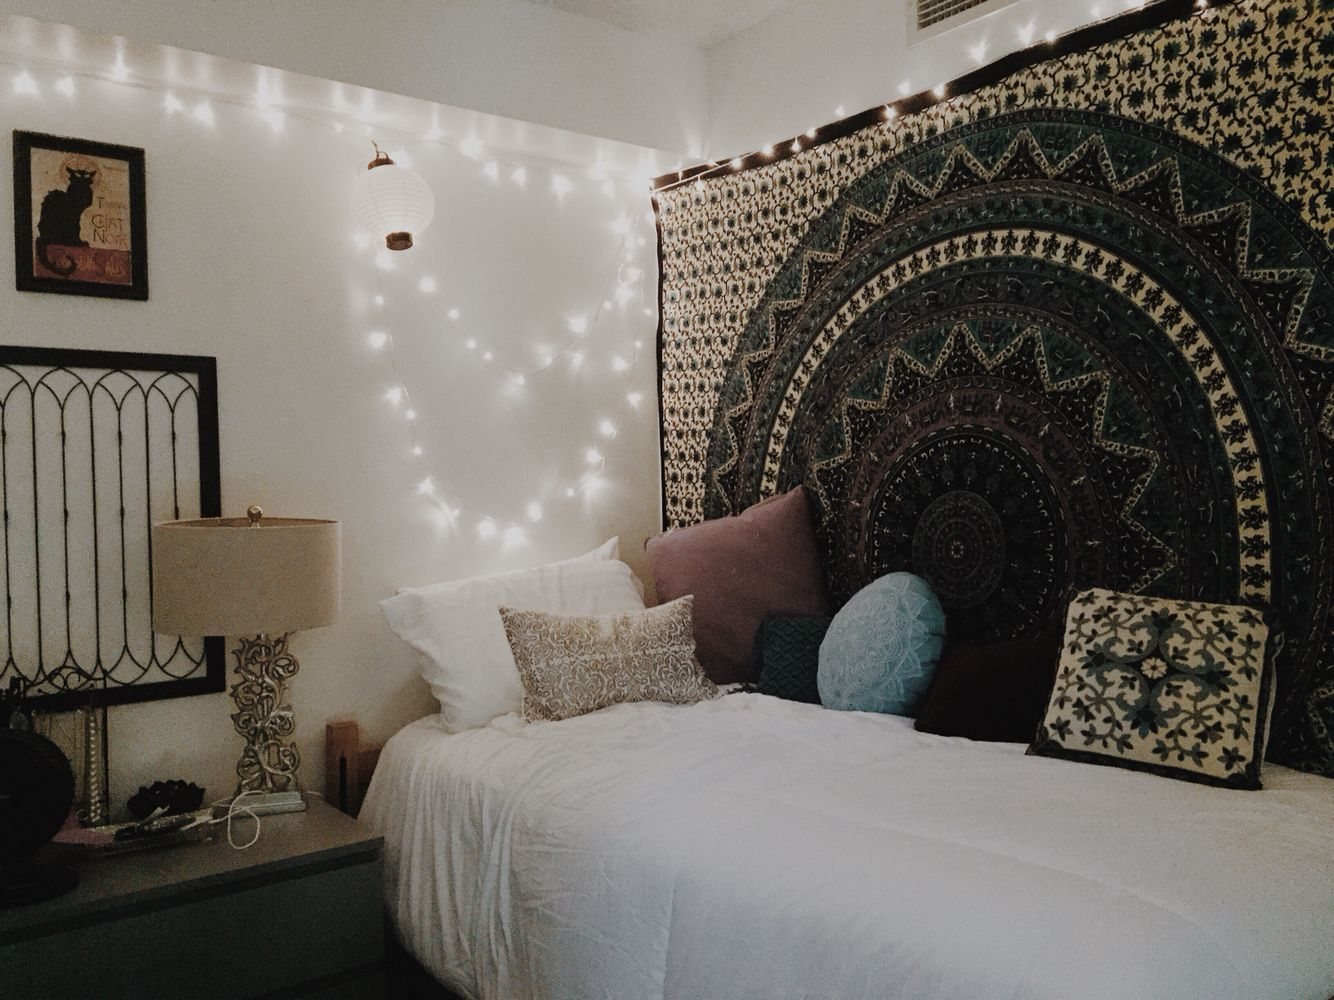 Pinterest Kelseyeliseb Dorm Pinterest Ideas Para  ~ Decoracion De Interiores Dormitorios